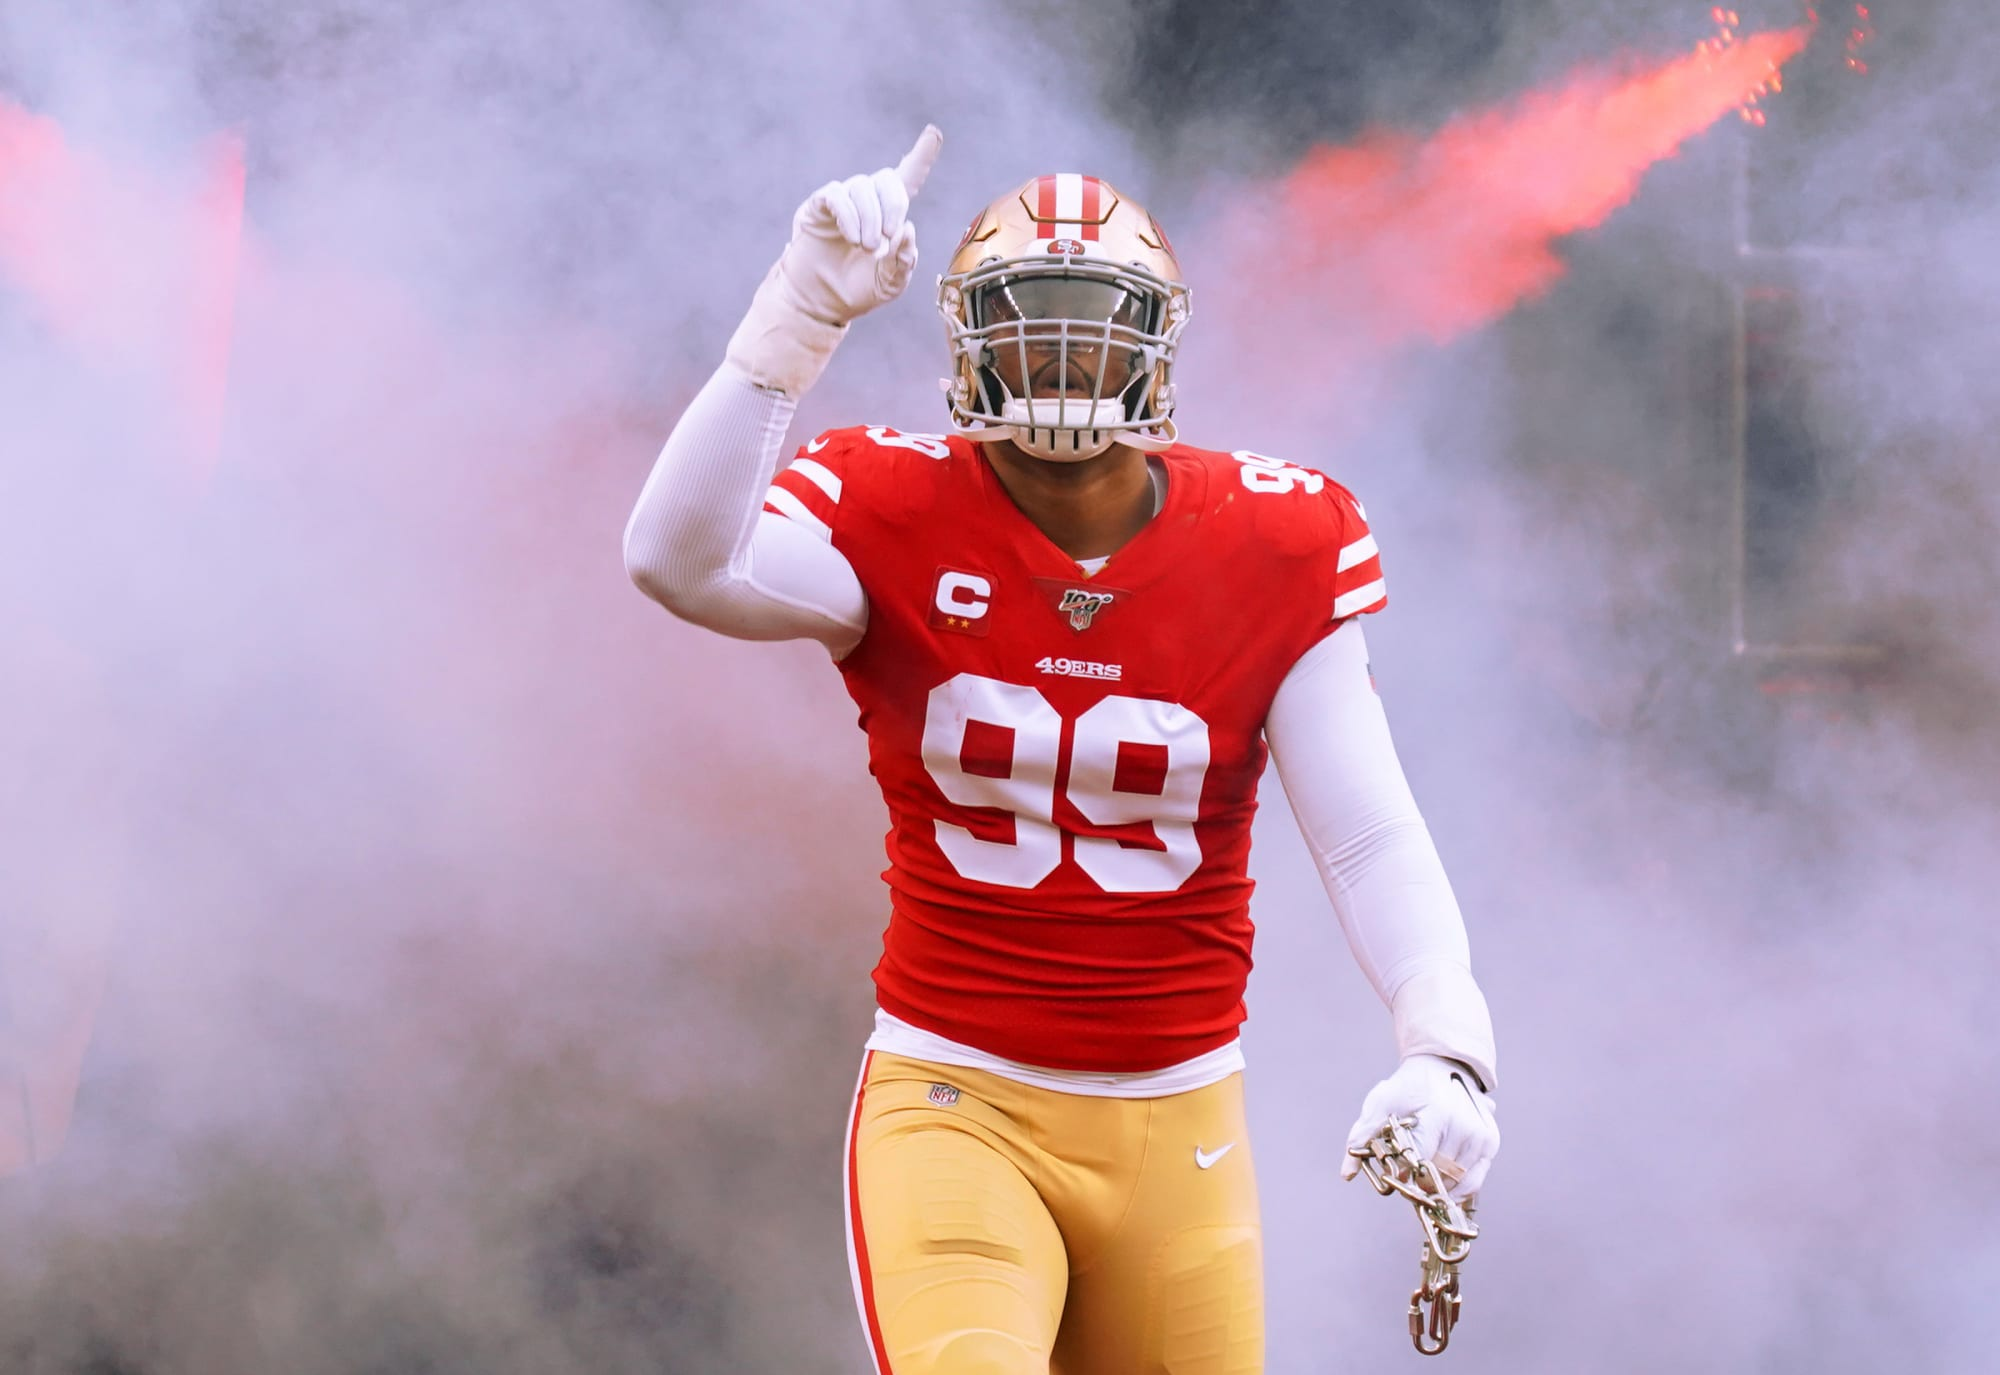 49ers: Complete grade and analysis of the 2020 offseason